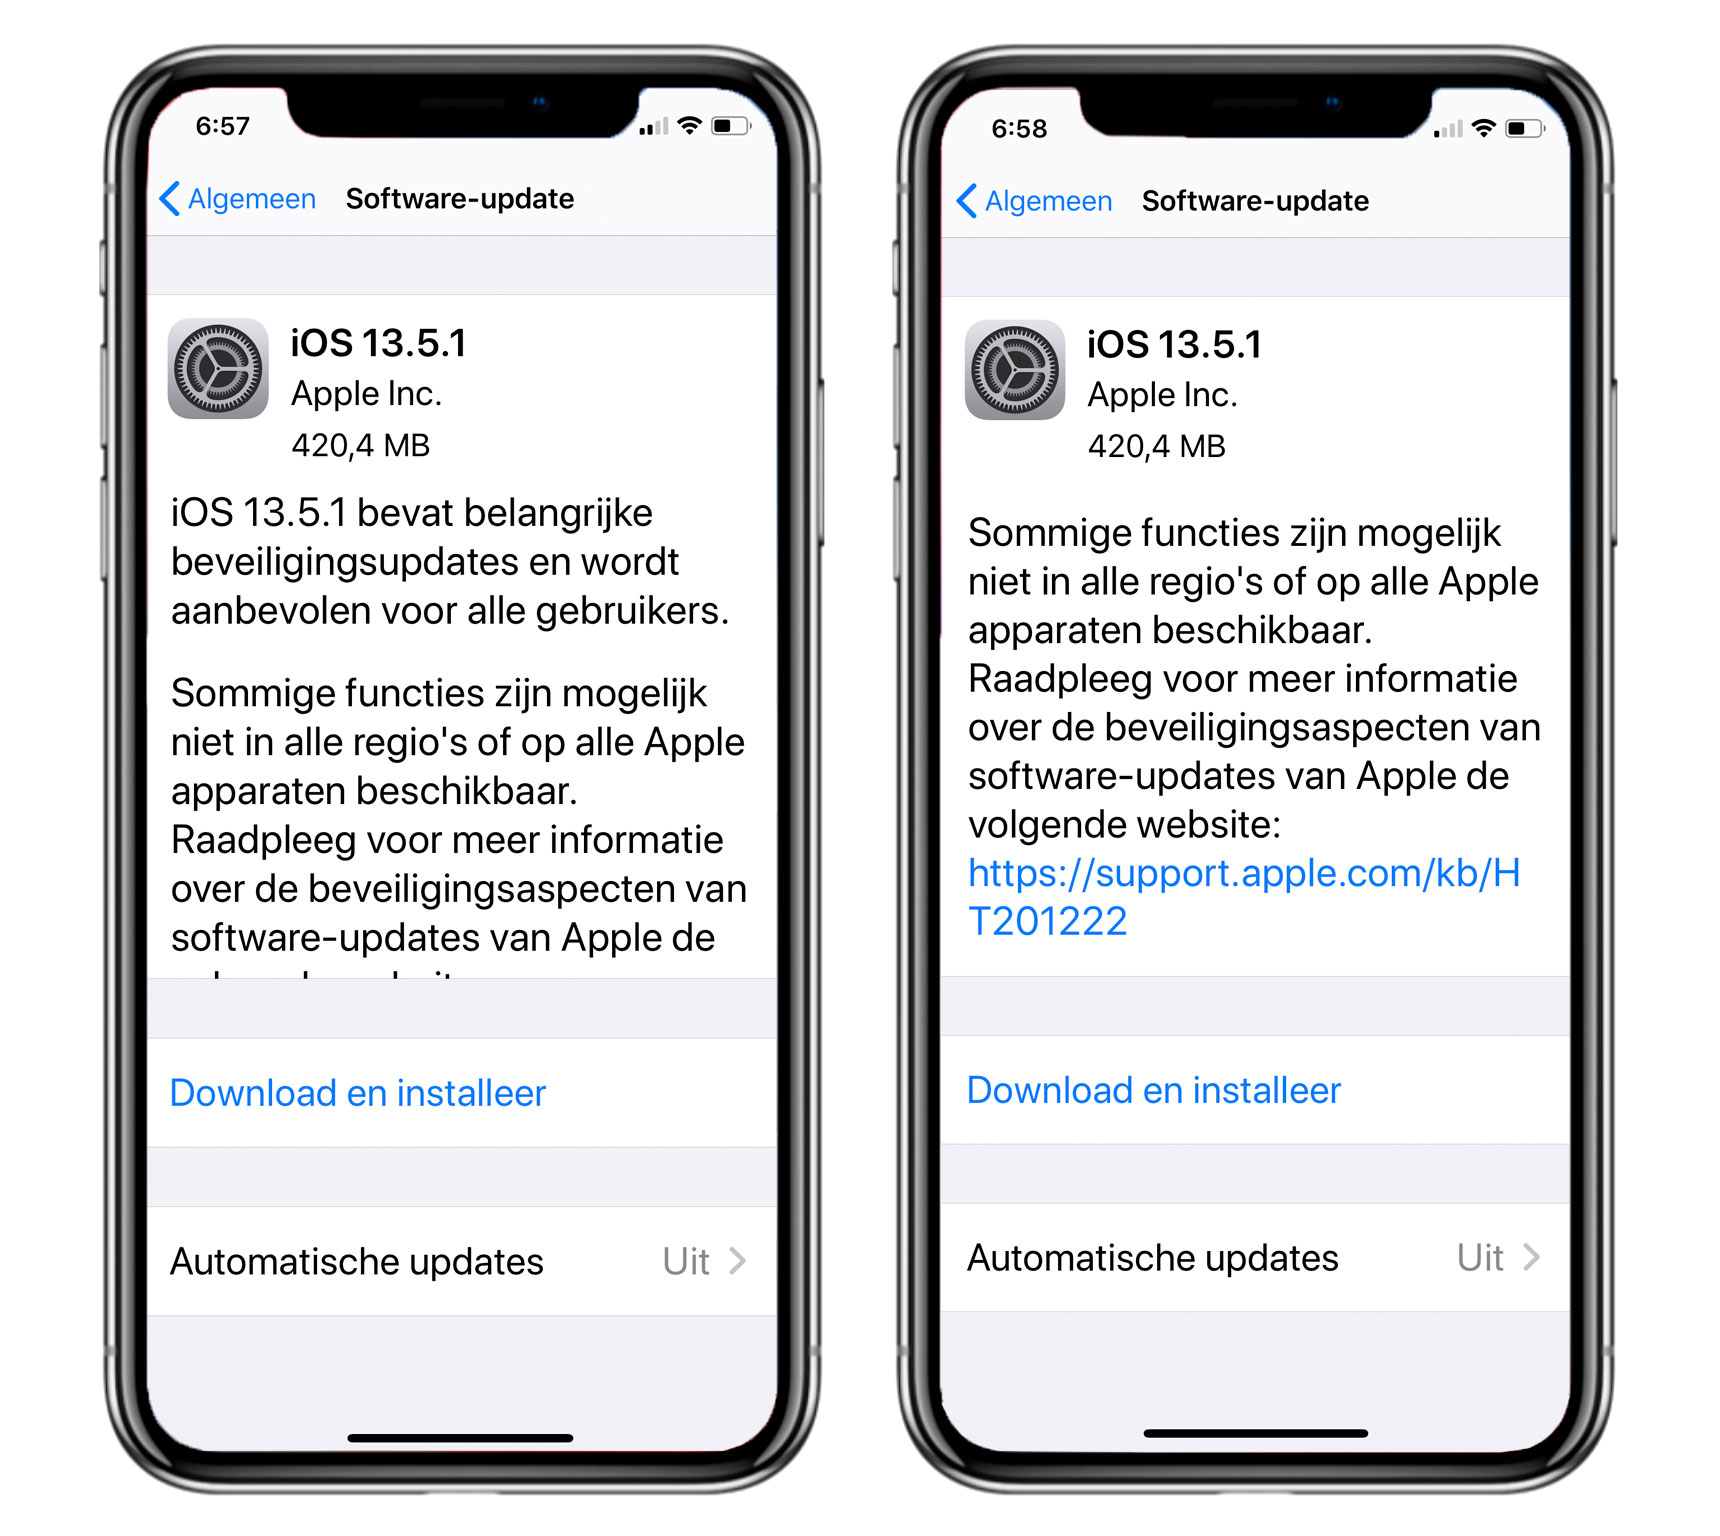 https://www.macfreak.nl/modules/news/images/zArt.iOS13.5.1ReleaseNotes.jpg